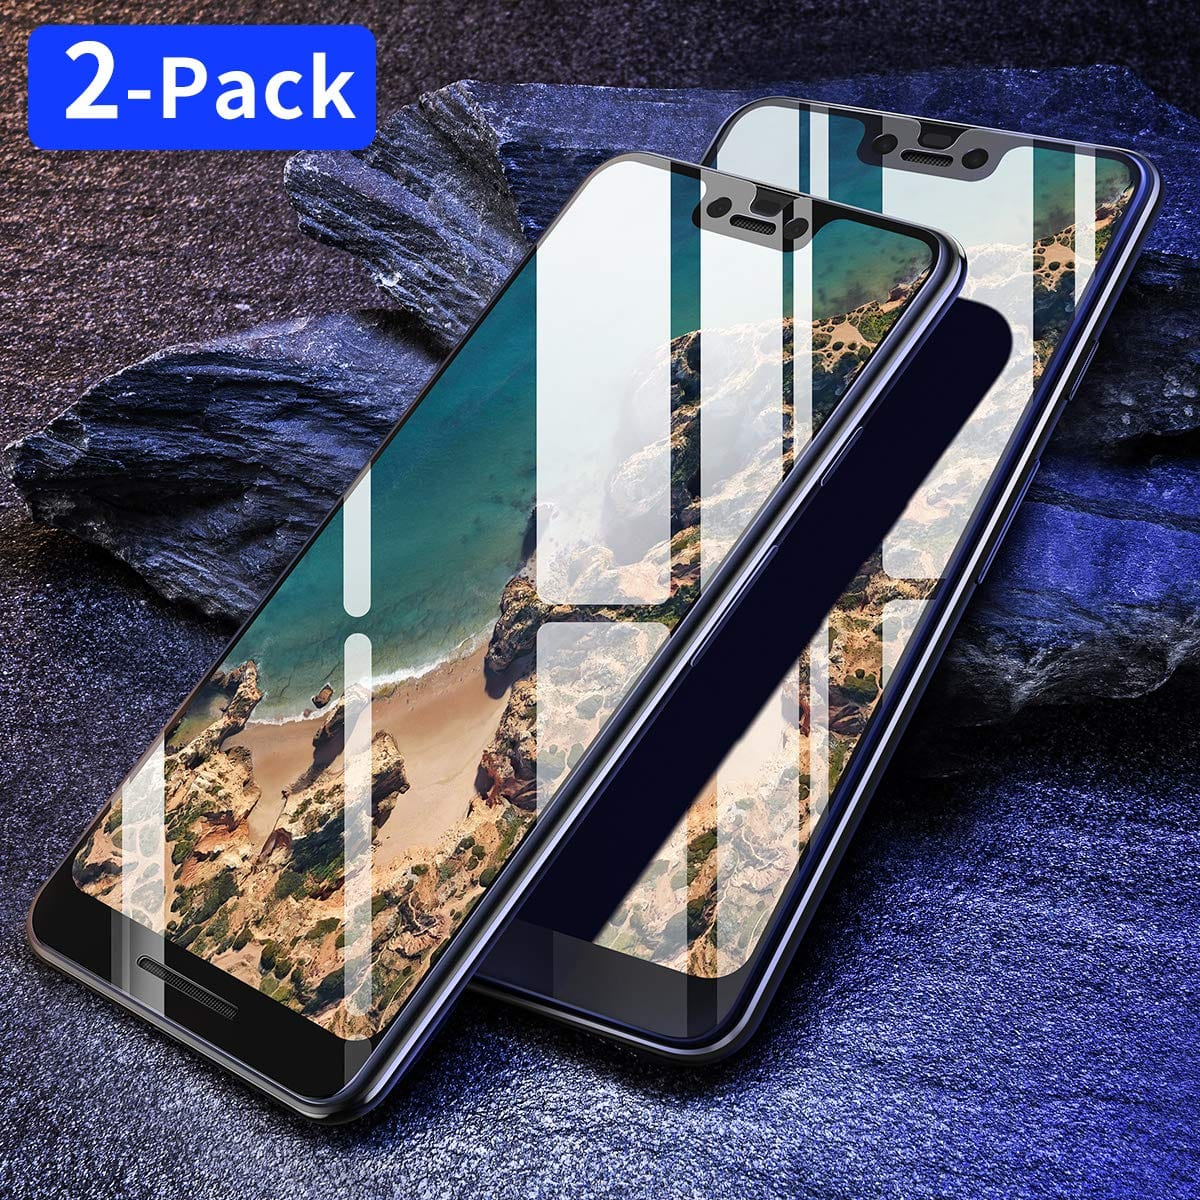 sale retailer 0bda7 dae5f Ainope Cases & Tempered Glass Screen Protector for Google pixel 3 ...